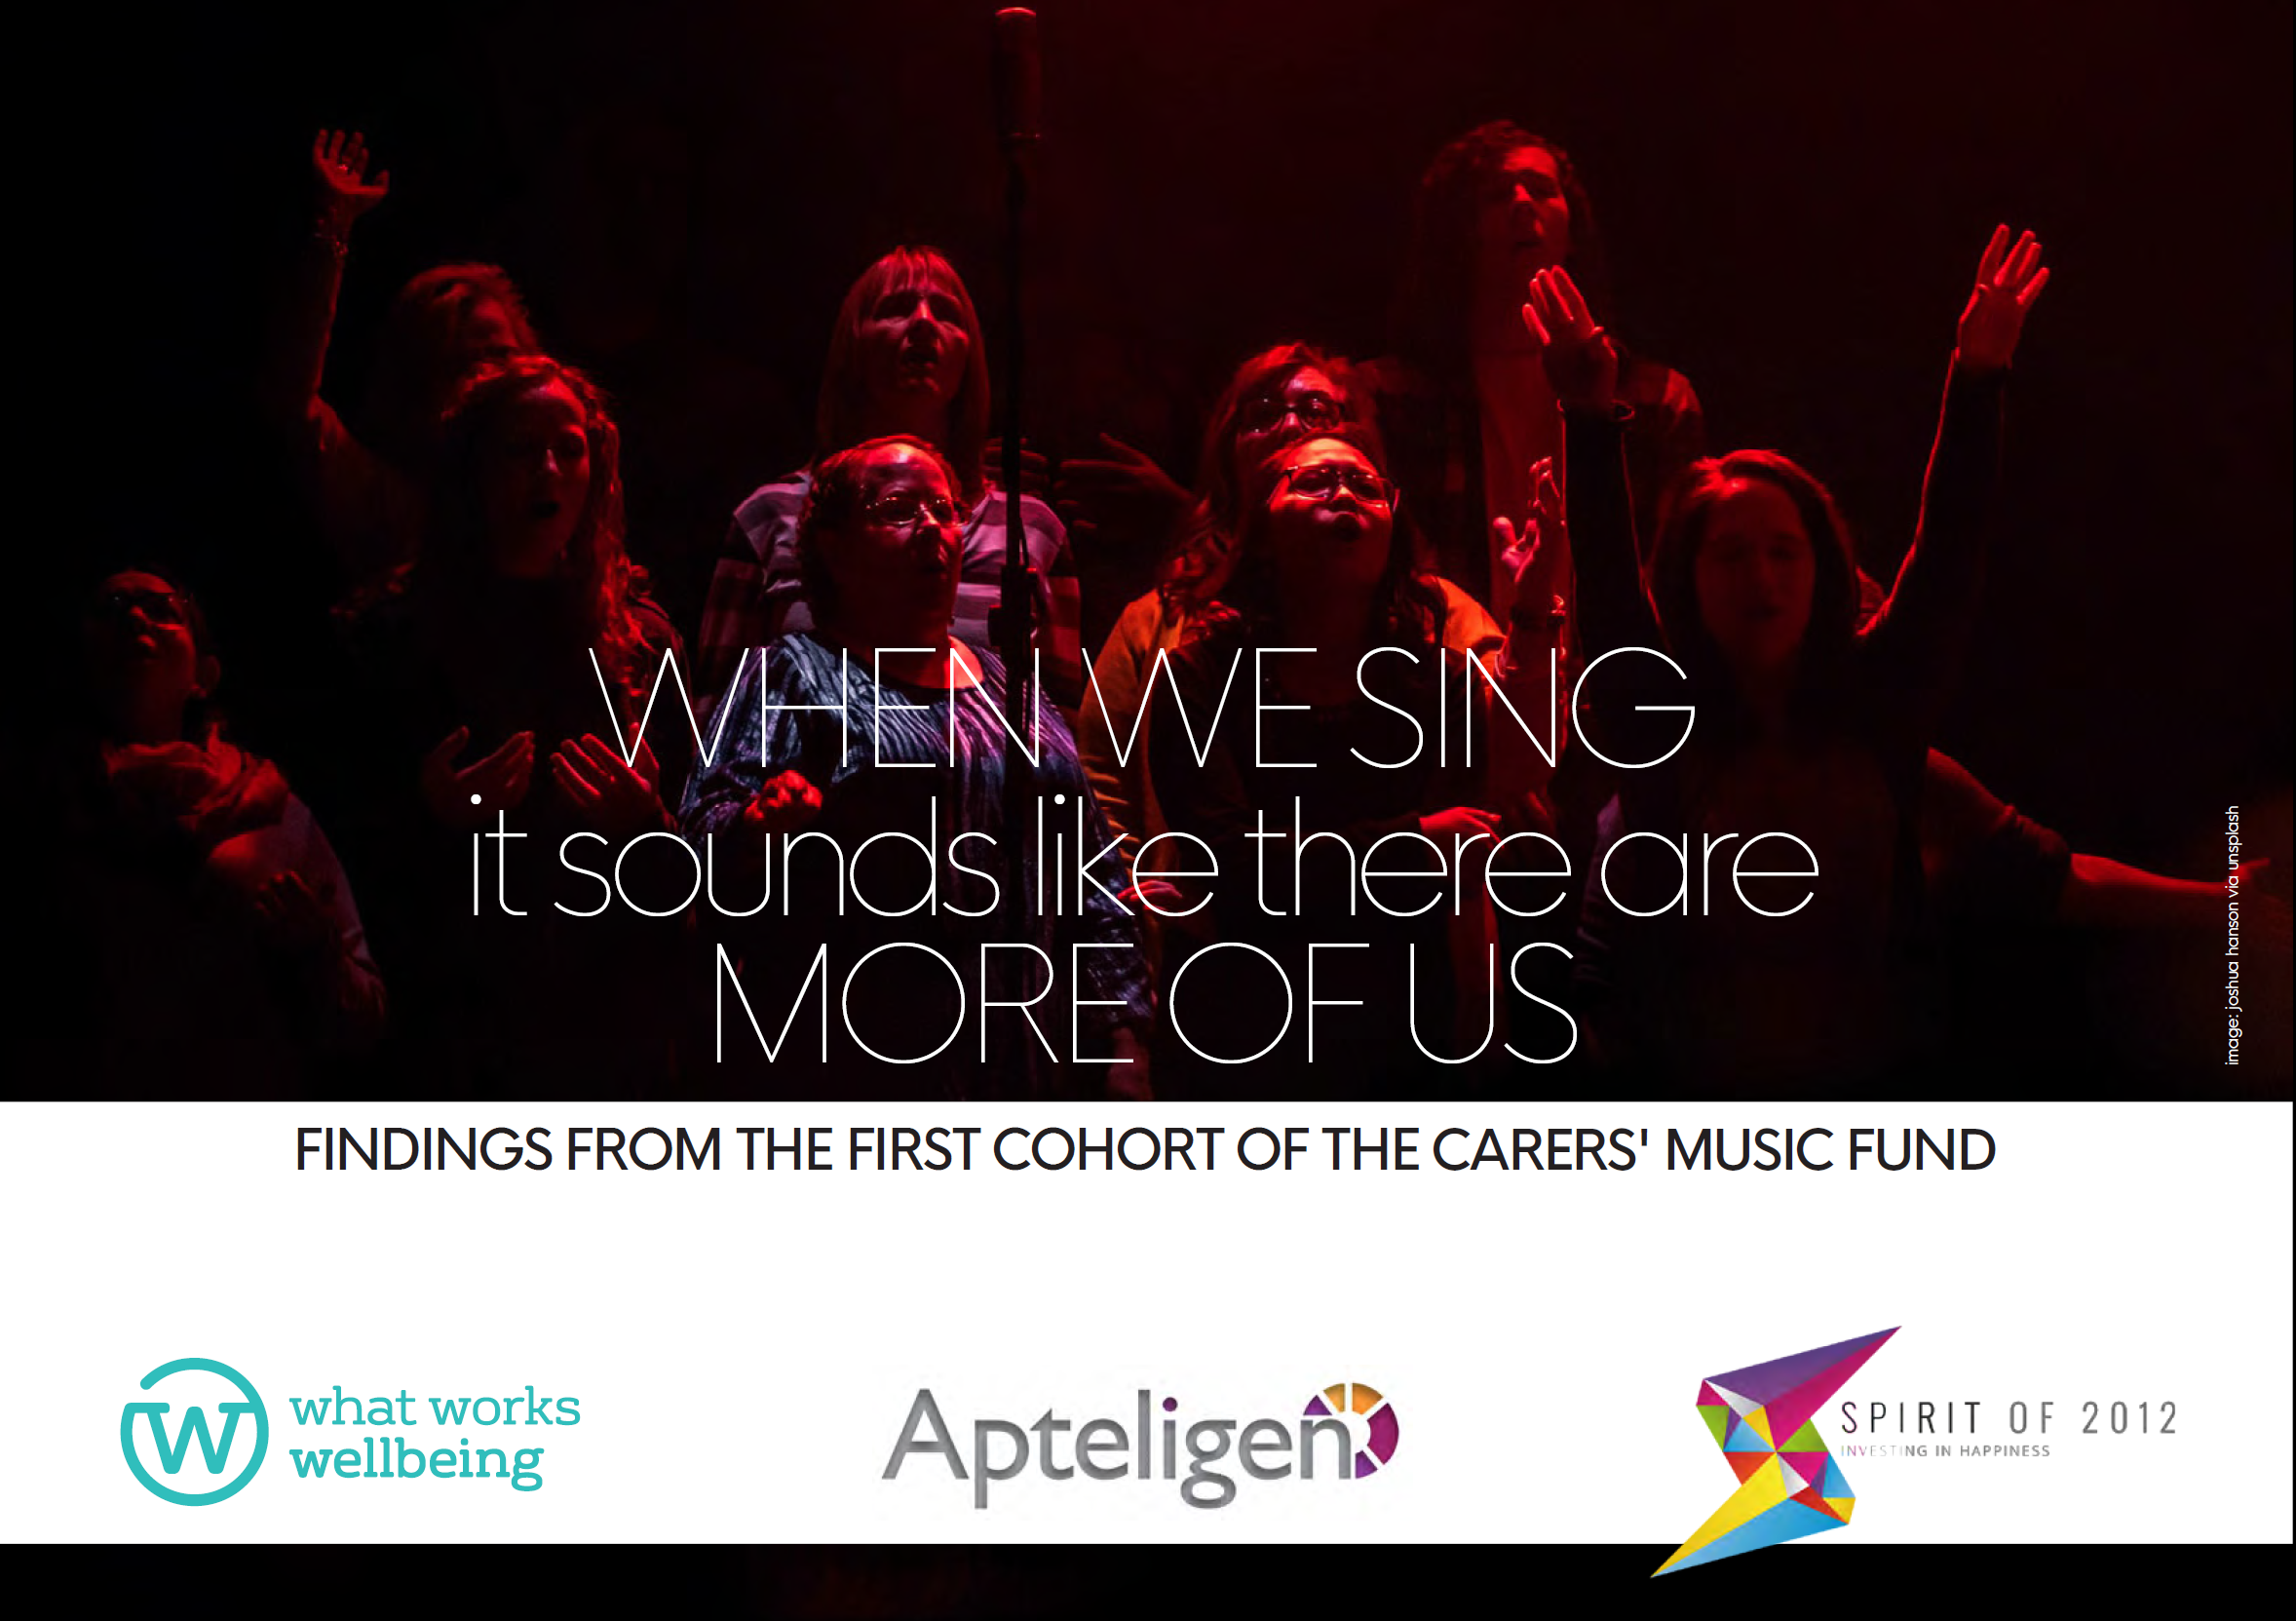 When we sing it sounds like there are more of us: Findings from the first cohort of the Carer's Music Fund